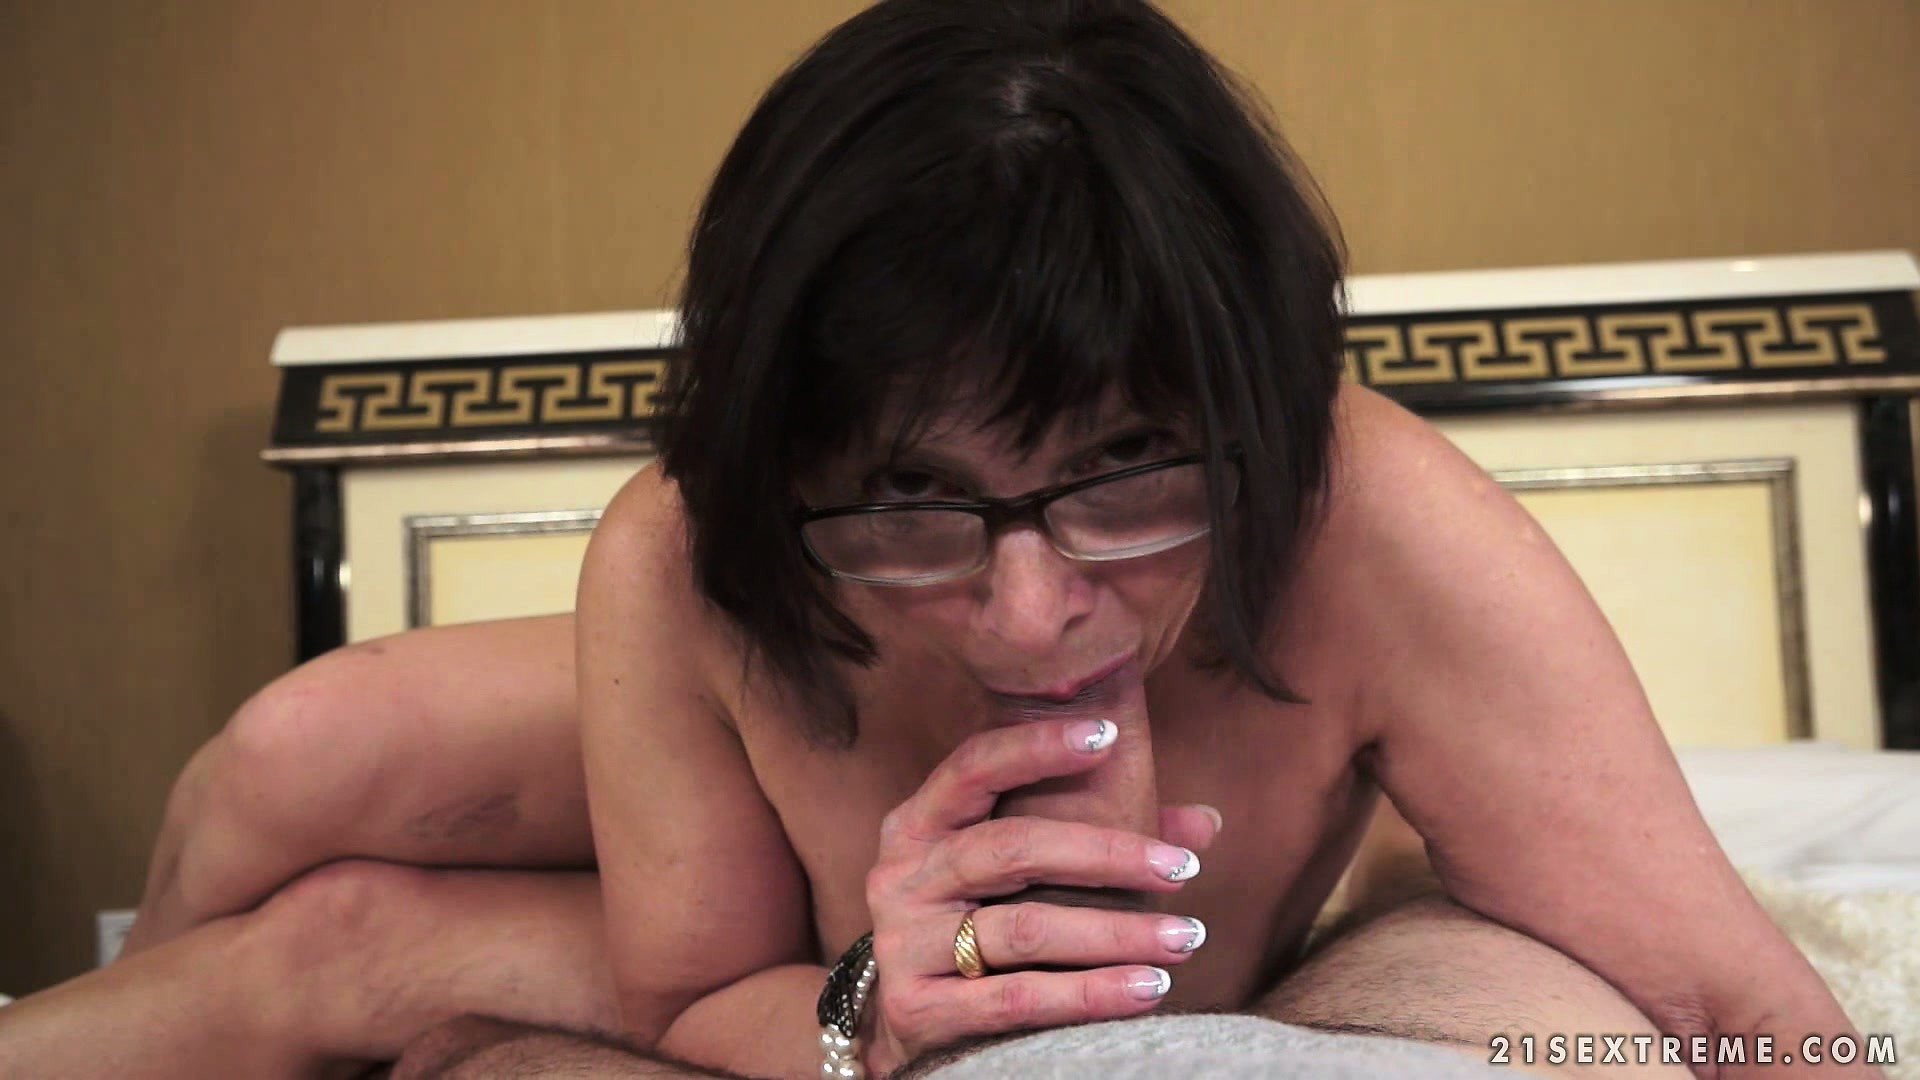 Porno Video of Bbw Granny In Glasses Takes A Ride On Top Of A Hard Meaty Shaft